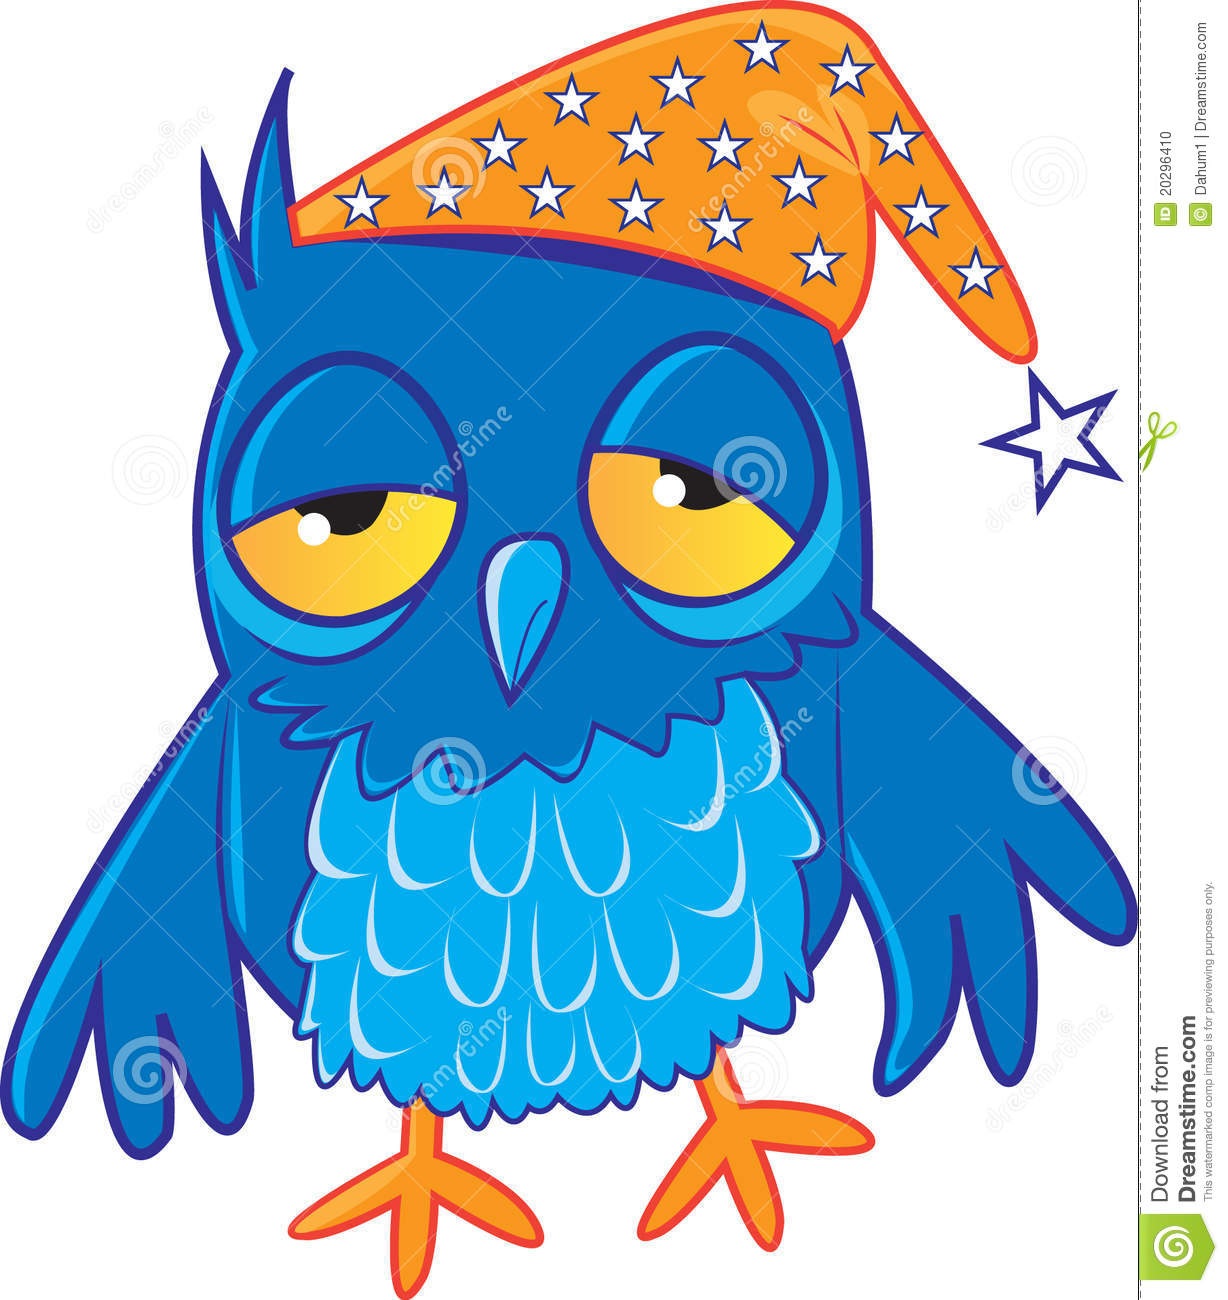 Sleepy Owl Stock Photo - Image: 20296410